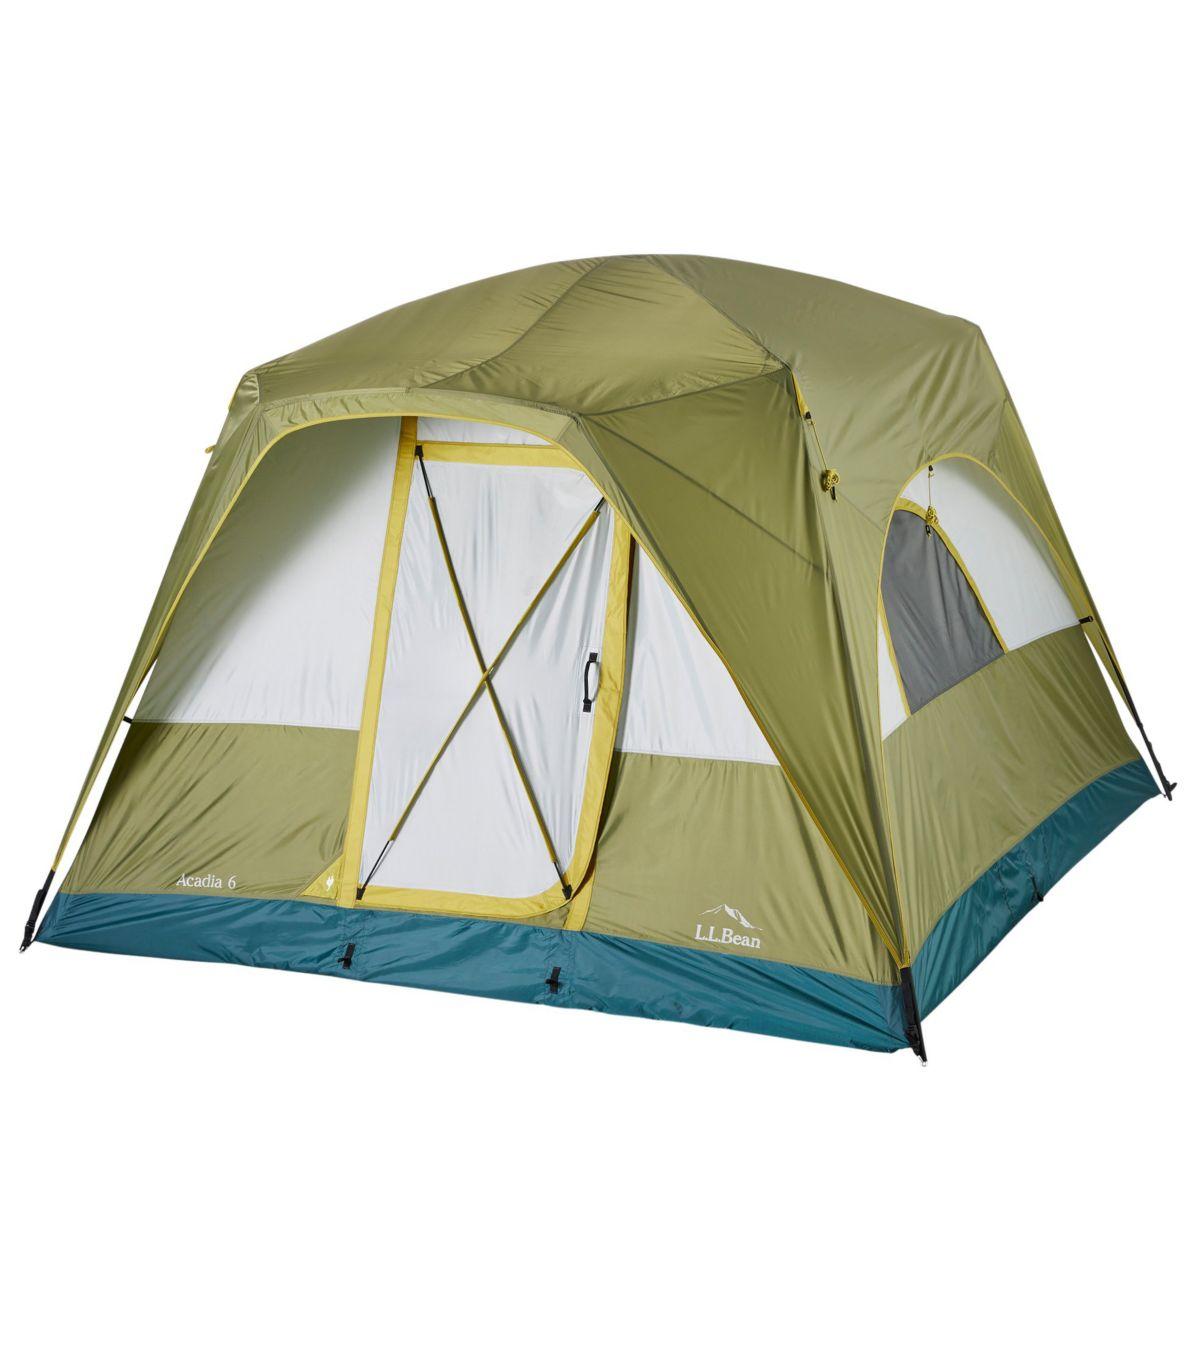 L.L.Bean Acadia 6-Person Family Tent